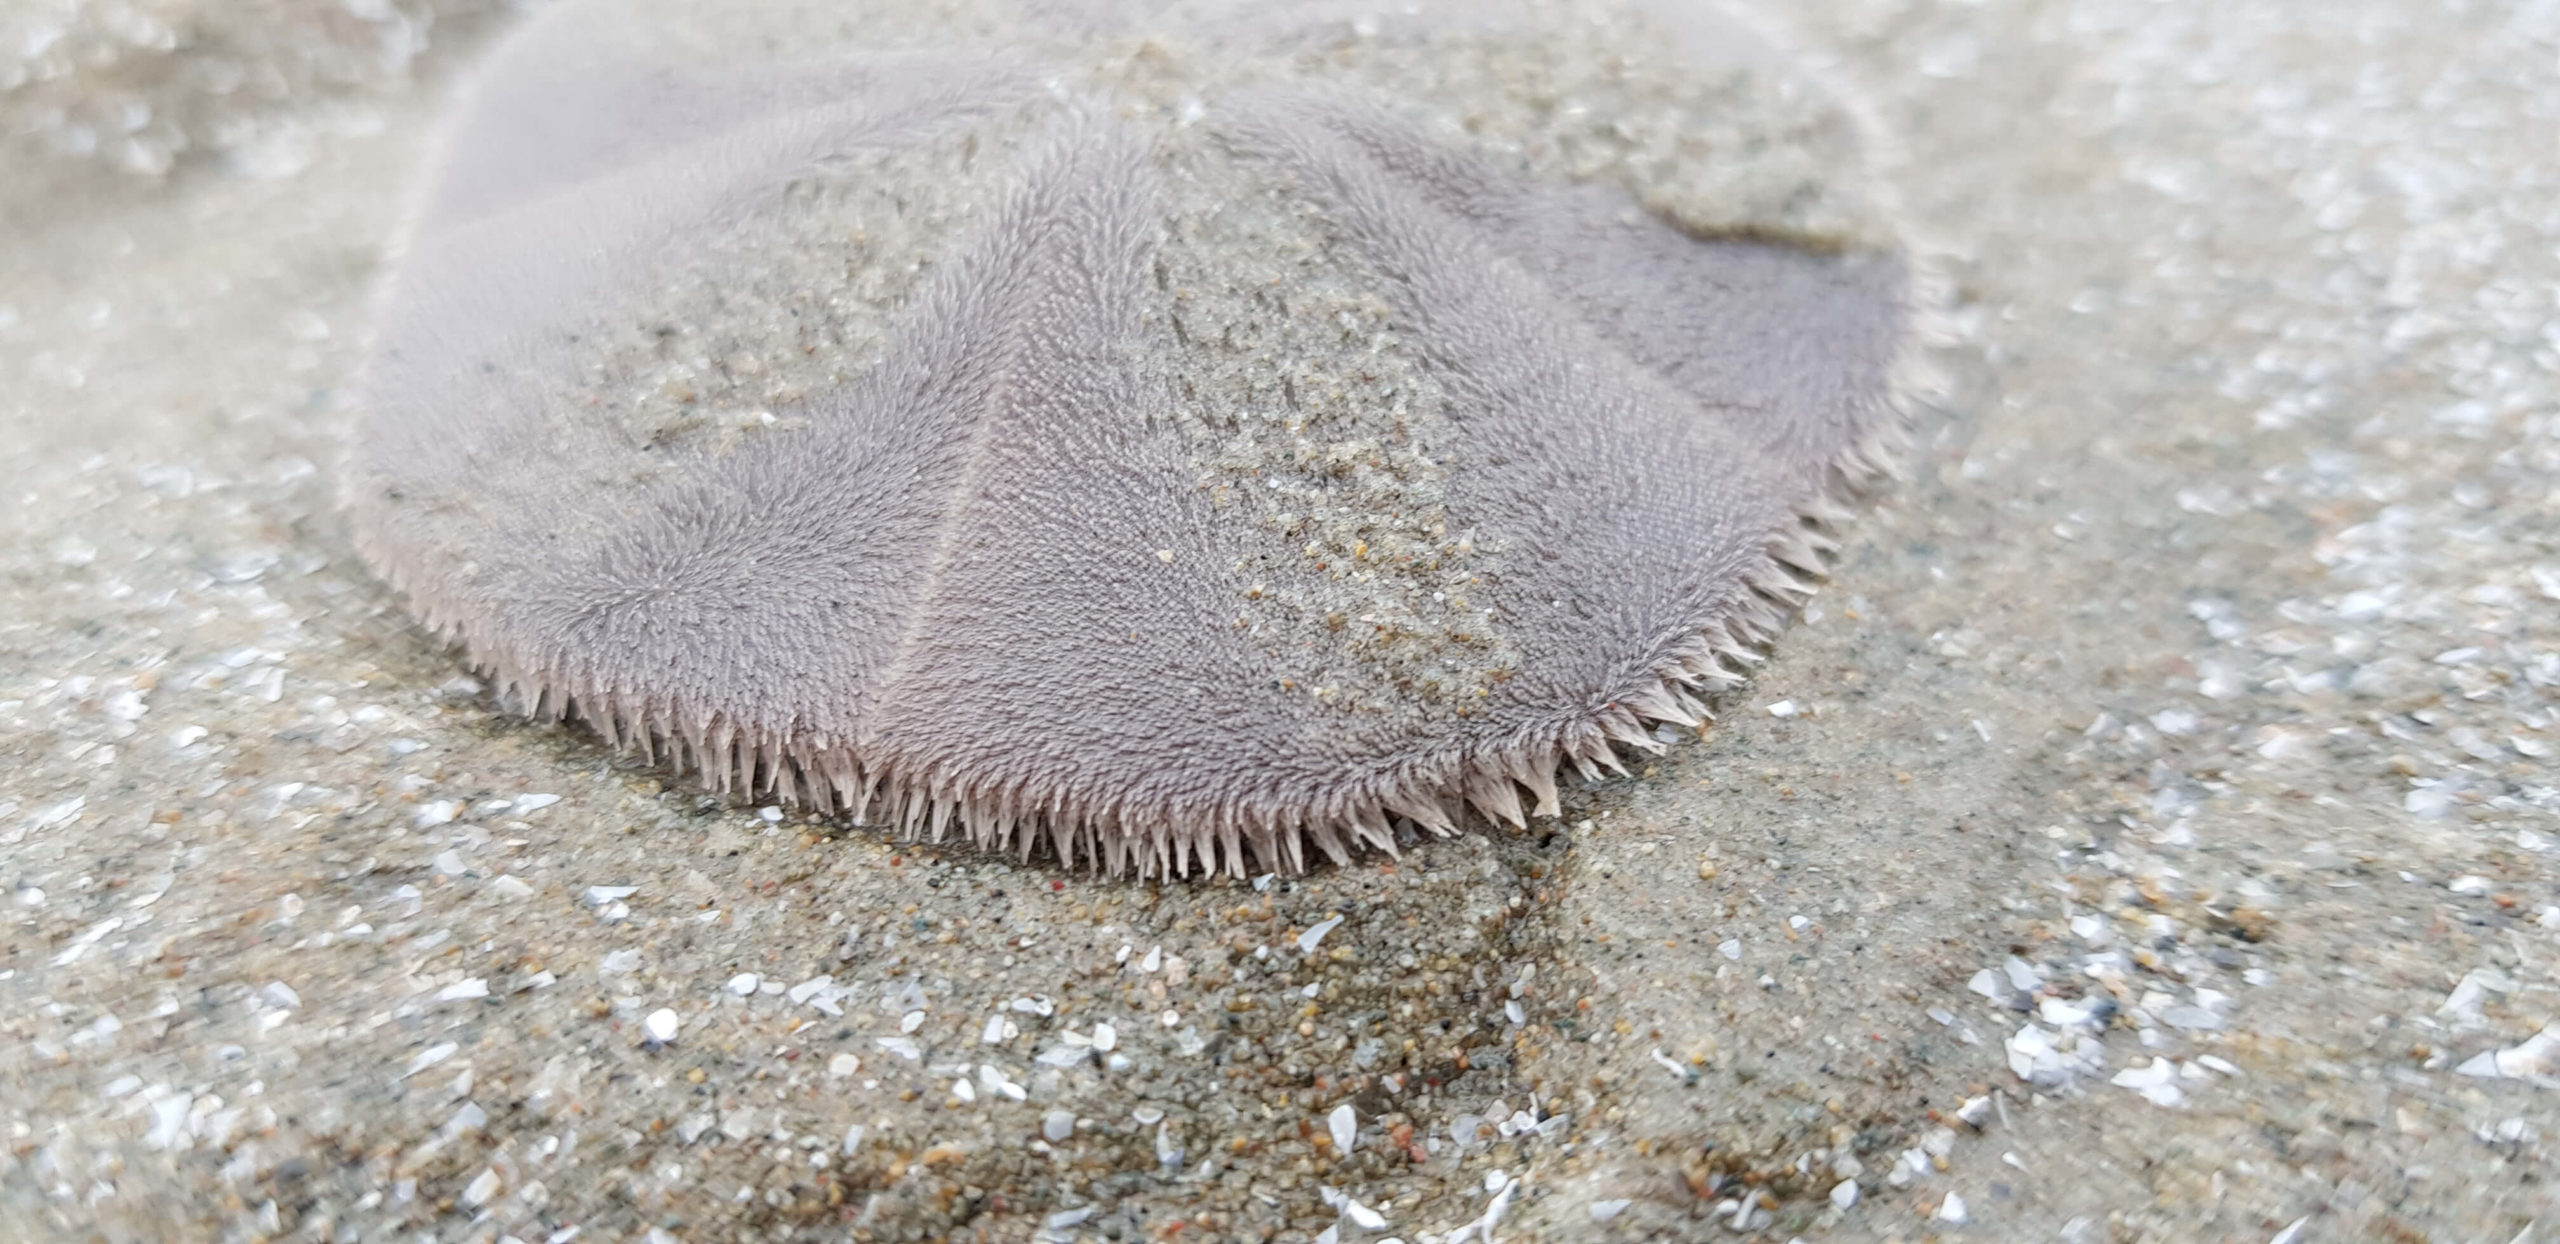 A live sand dollar partially burrowed into the sand